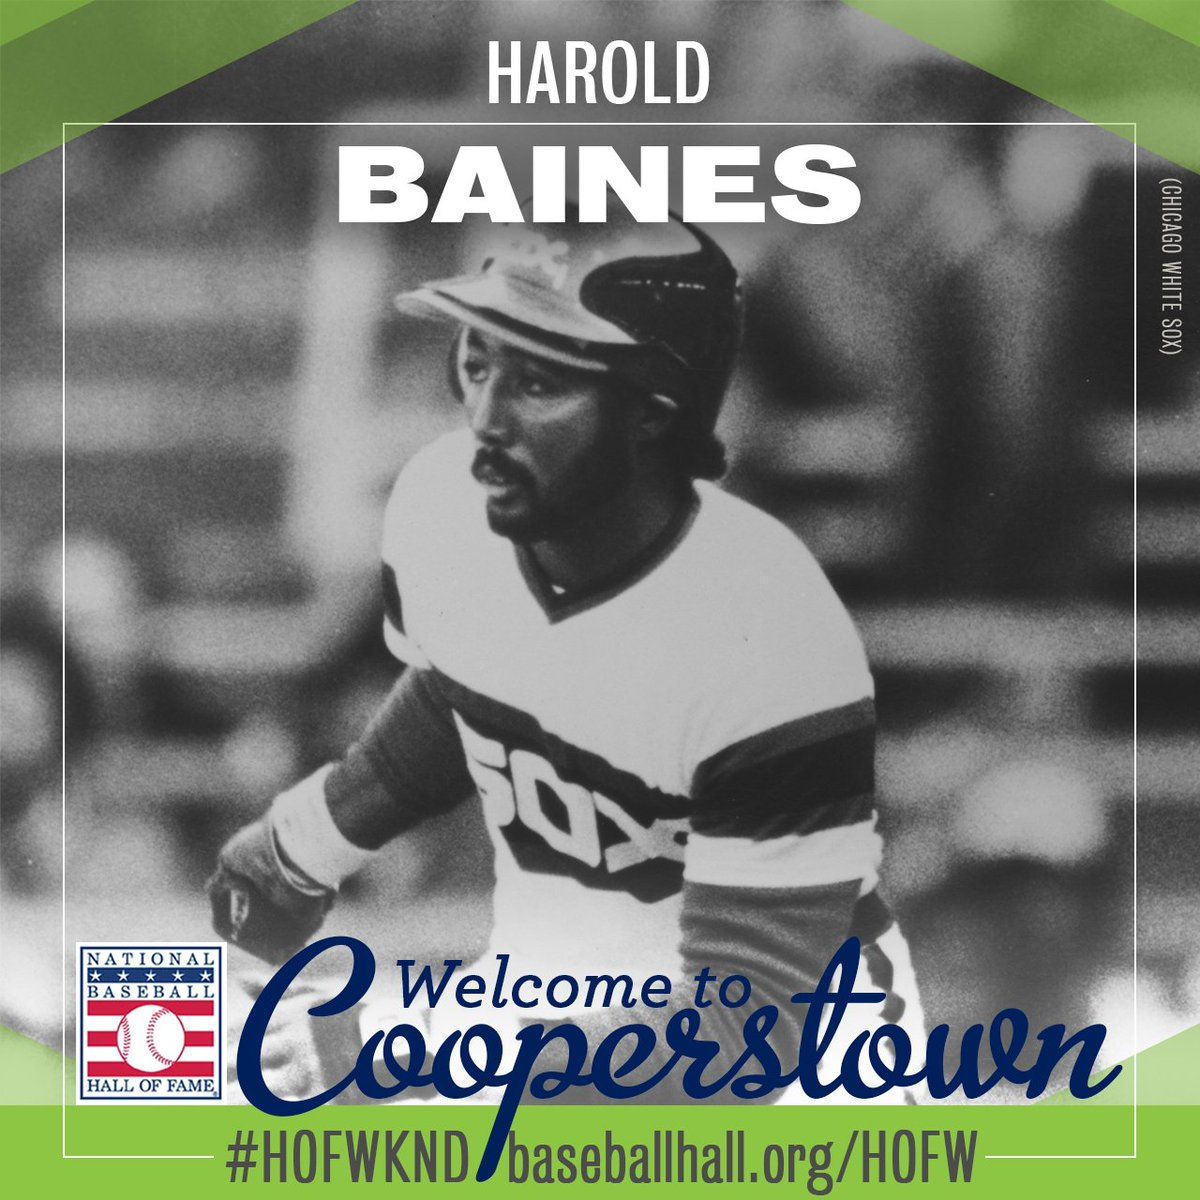 Welcome to Cooperstown, Harold Baines! #HOF2019 https://baseballhall.org/hall-of-famers/baines-harold…